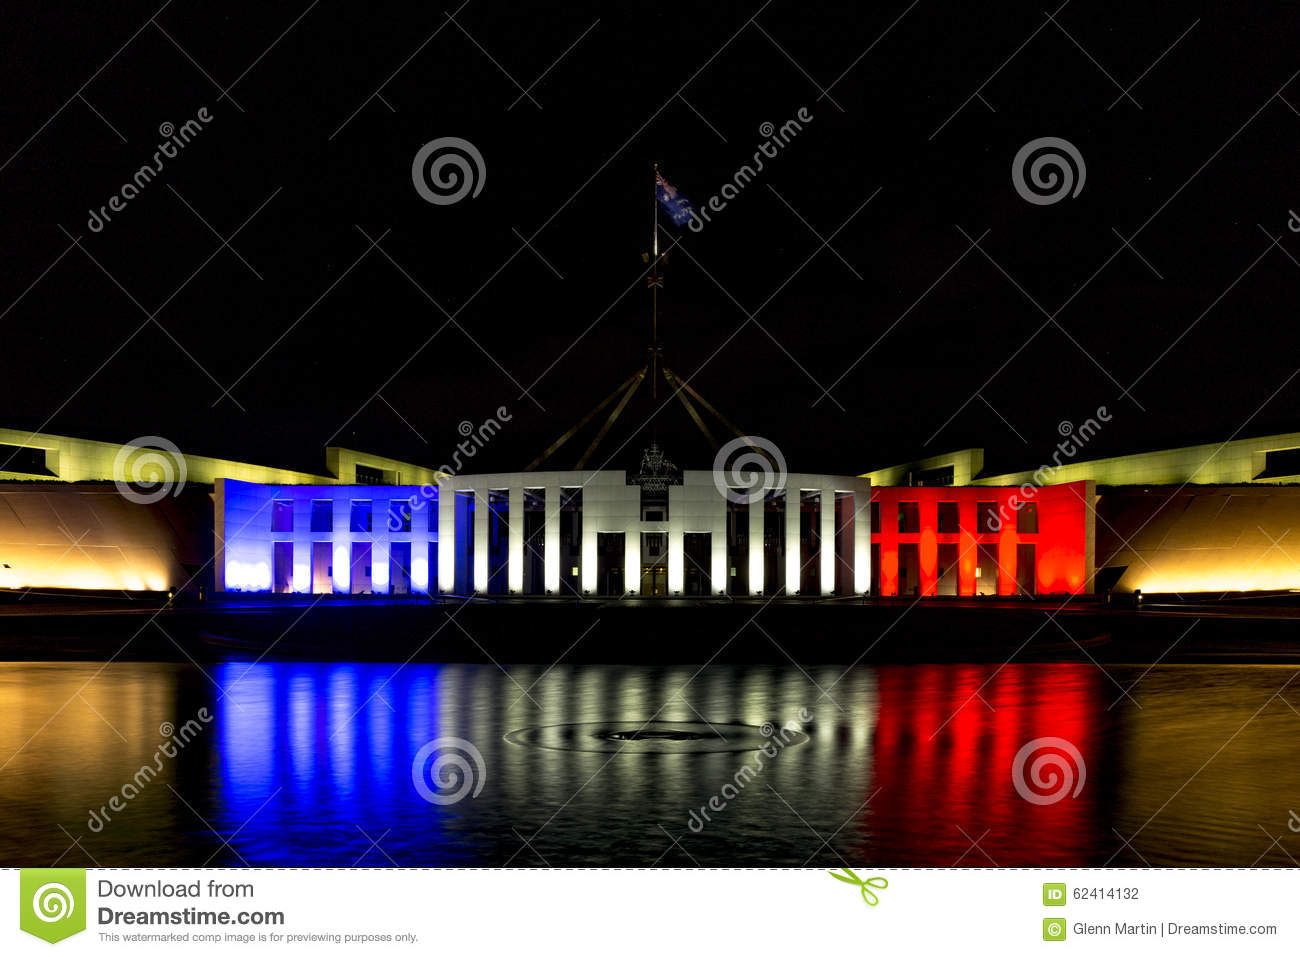 Australias Parliament House in blue, white and red